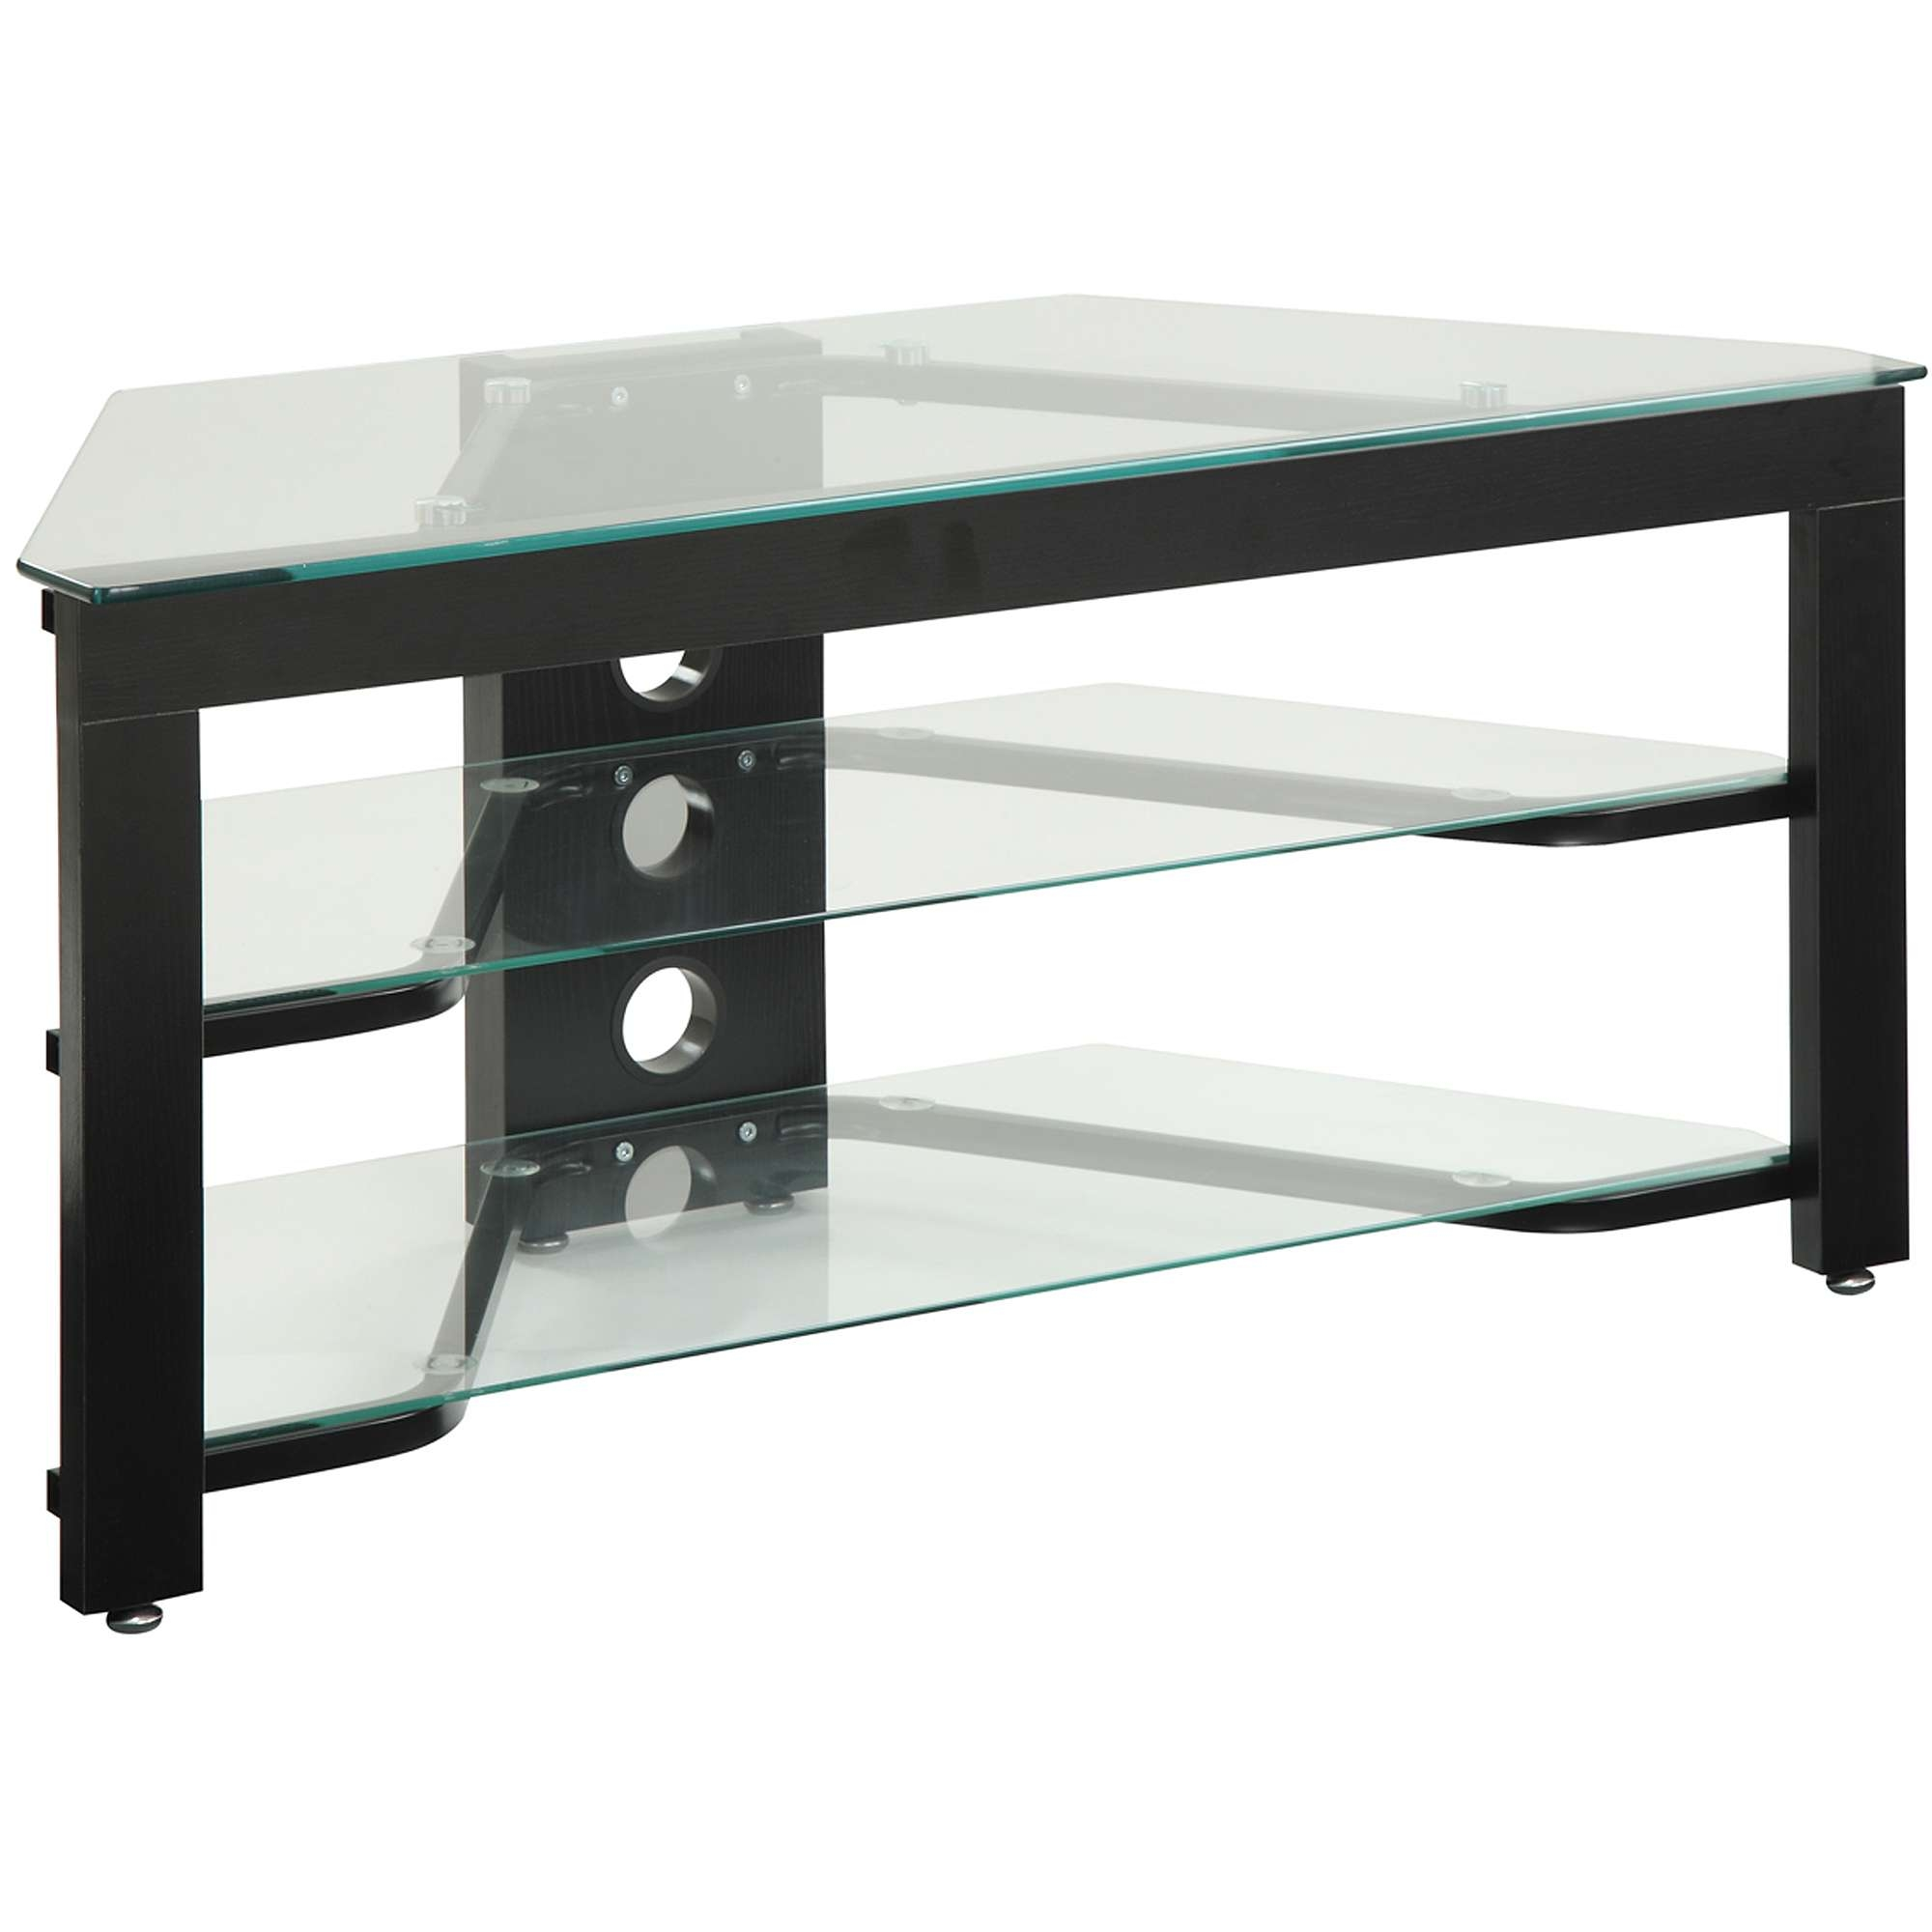 Convenience Concepts Designs2Go Wood And Glass Tv Stand For Tvs Up Within Wood And Metal Tv Stands (View 6 of 15)